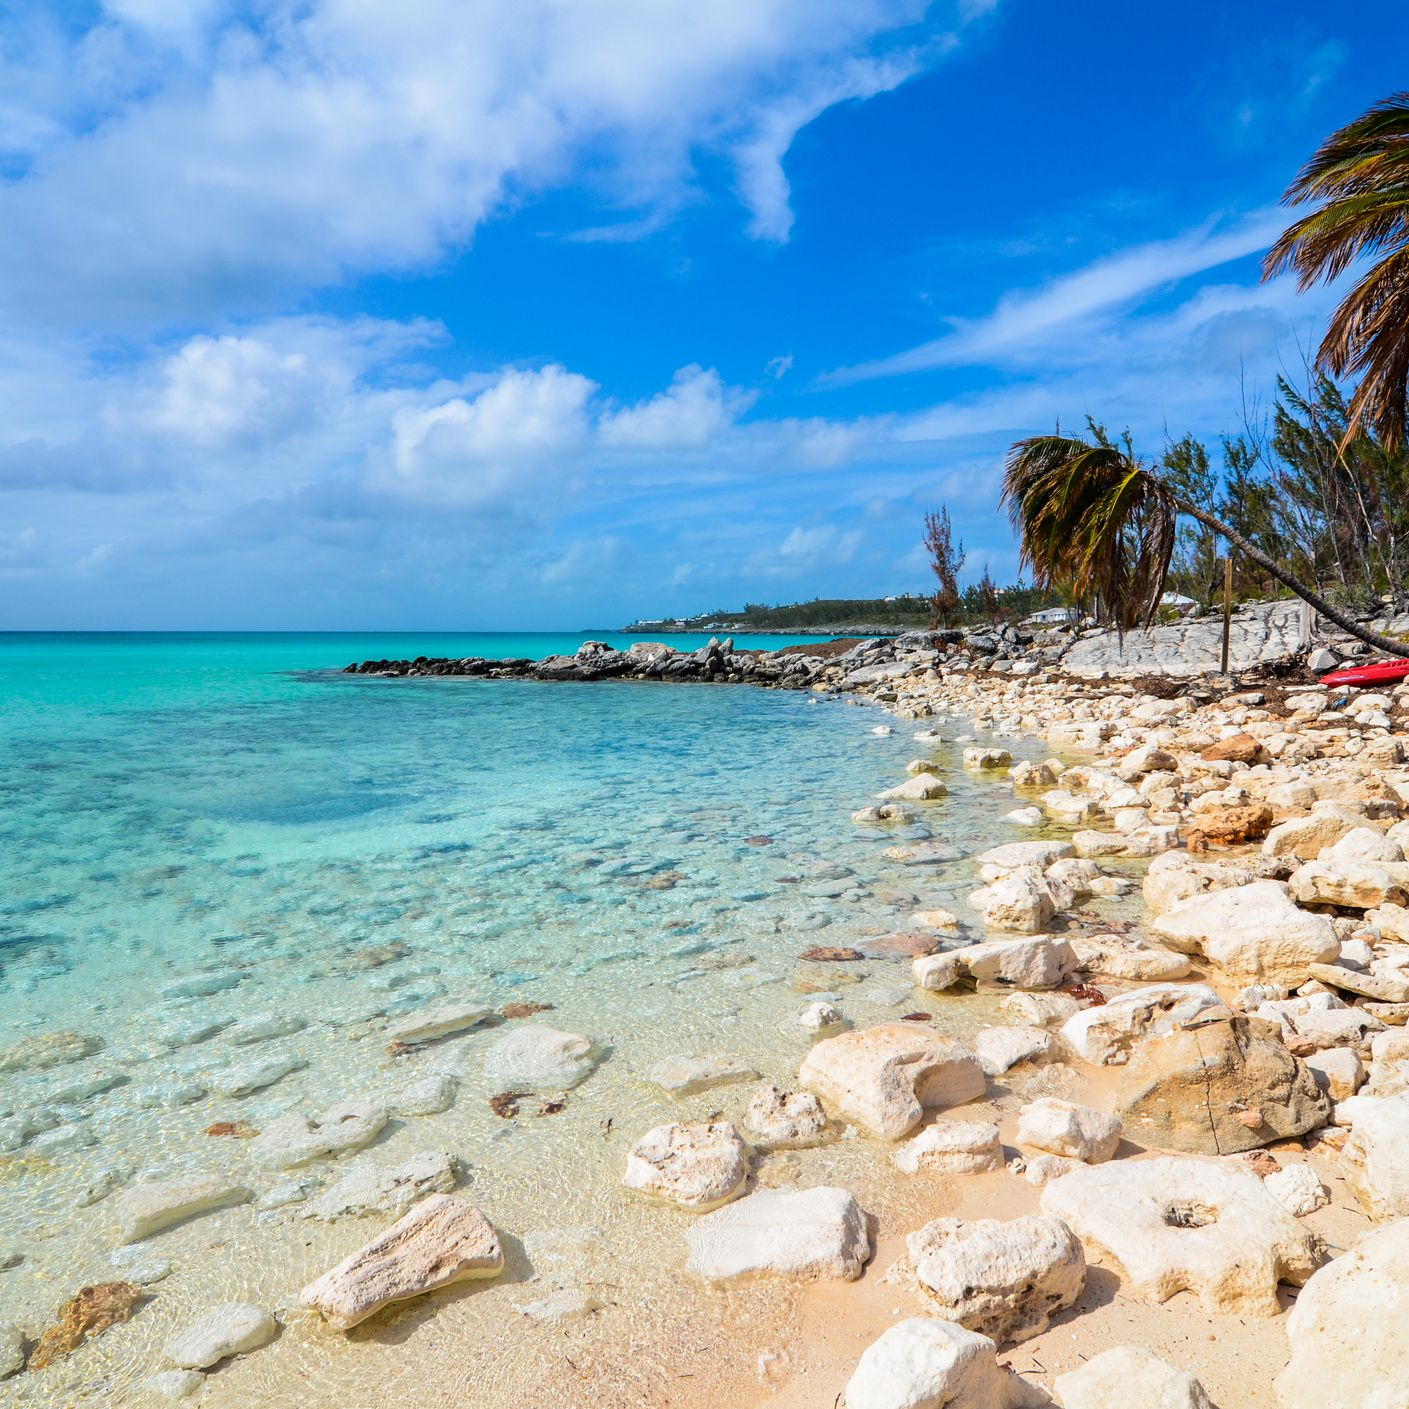 The 8 Best Islands to Visit in the Bahamas